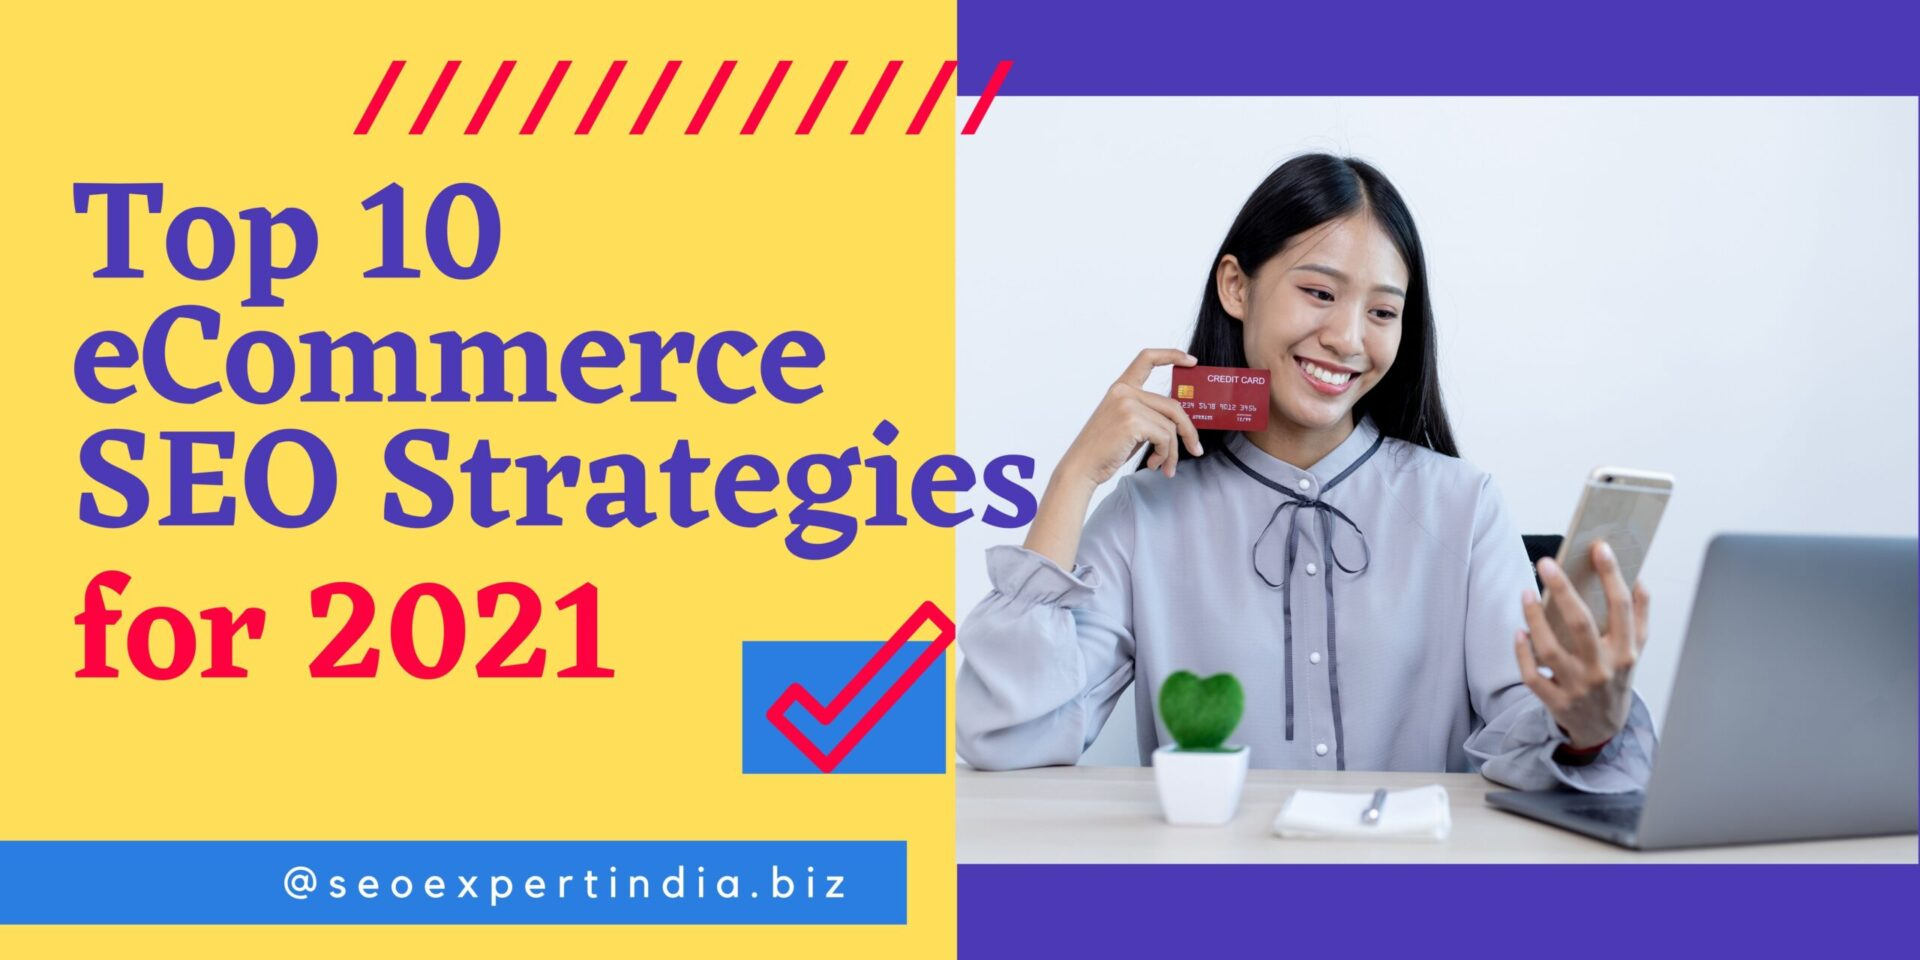 Top 10 eCommerce SEO Strategies for 2021